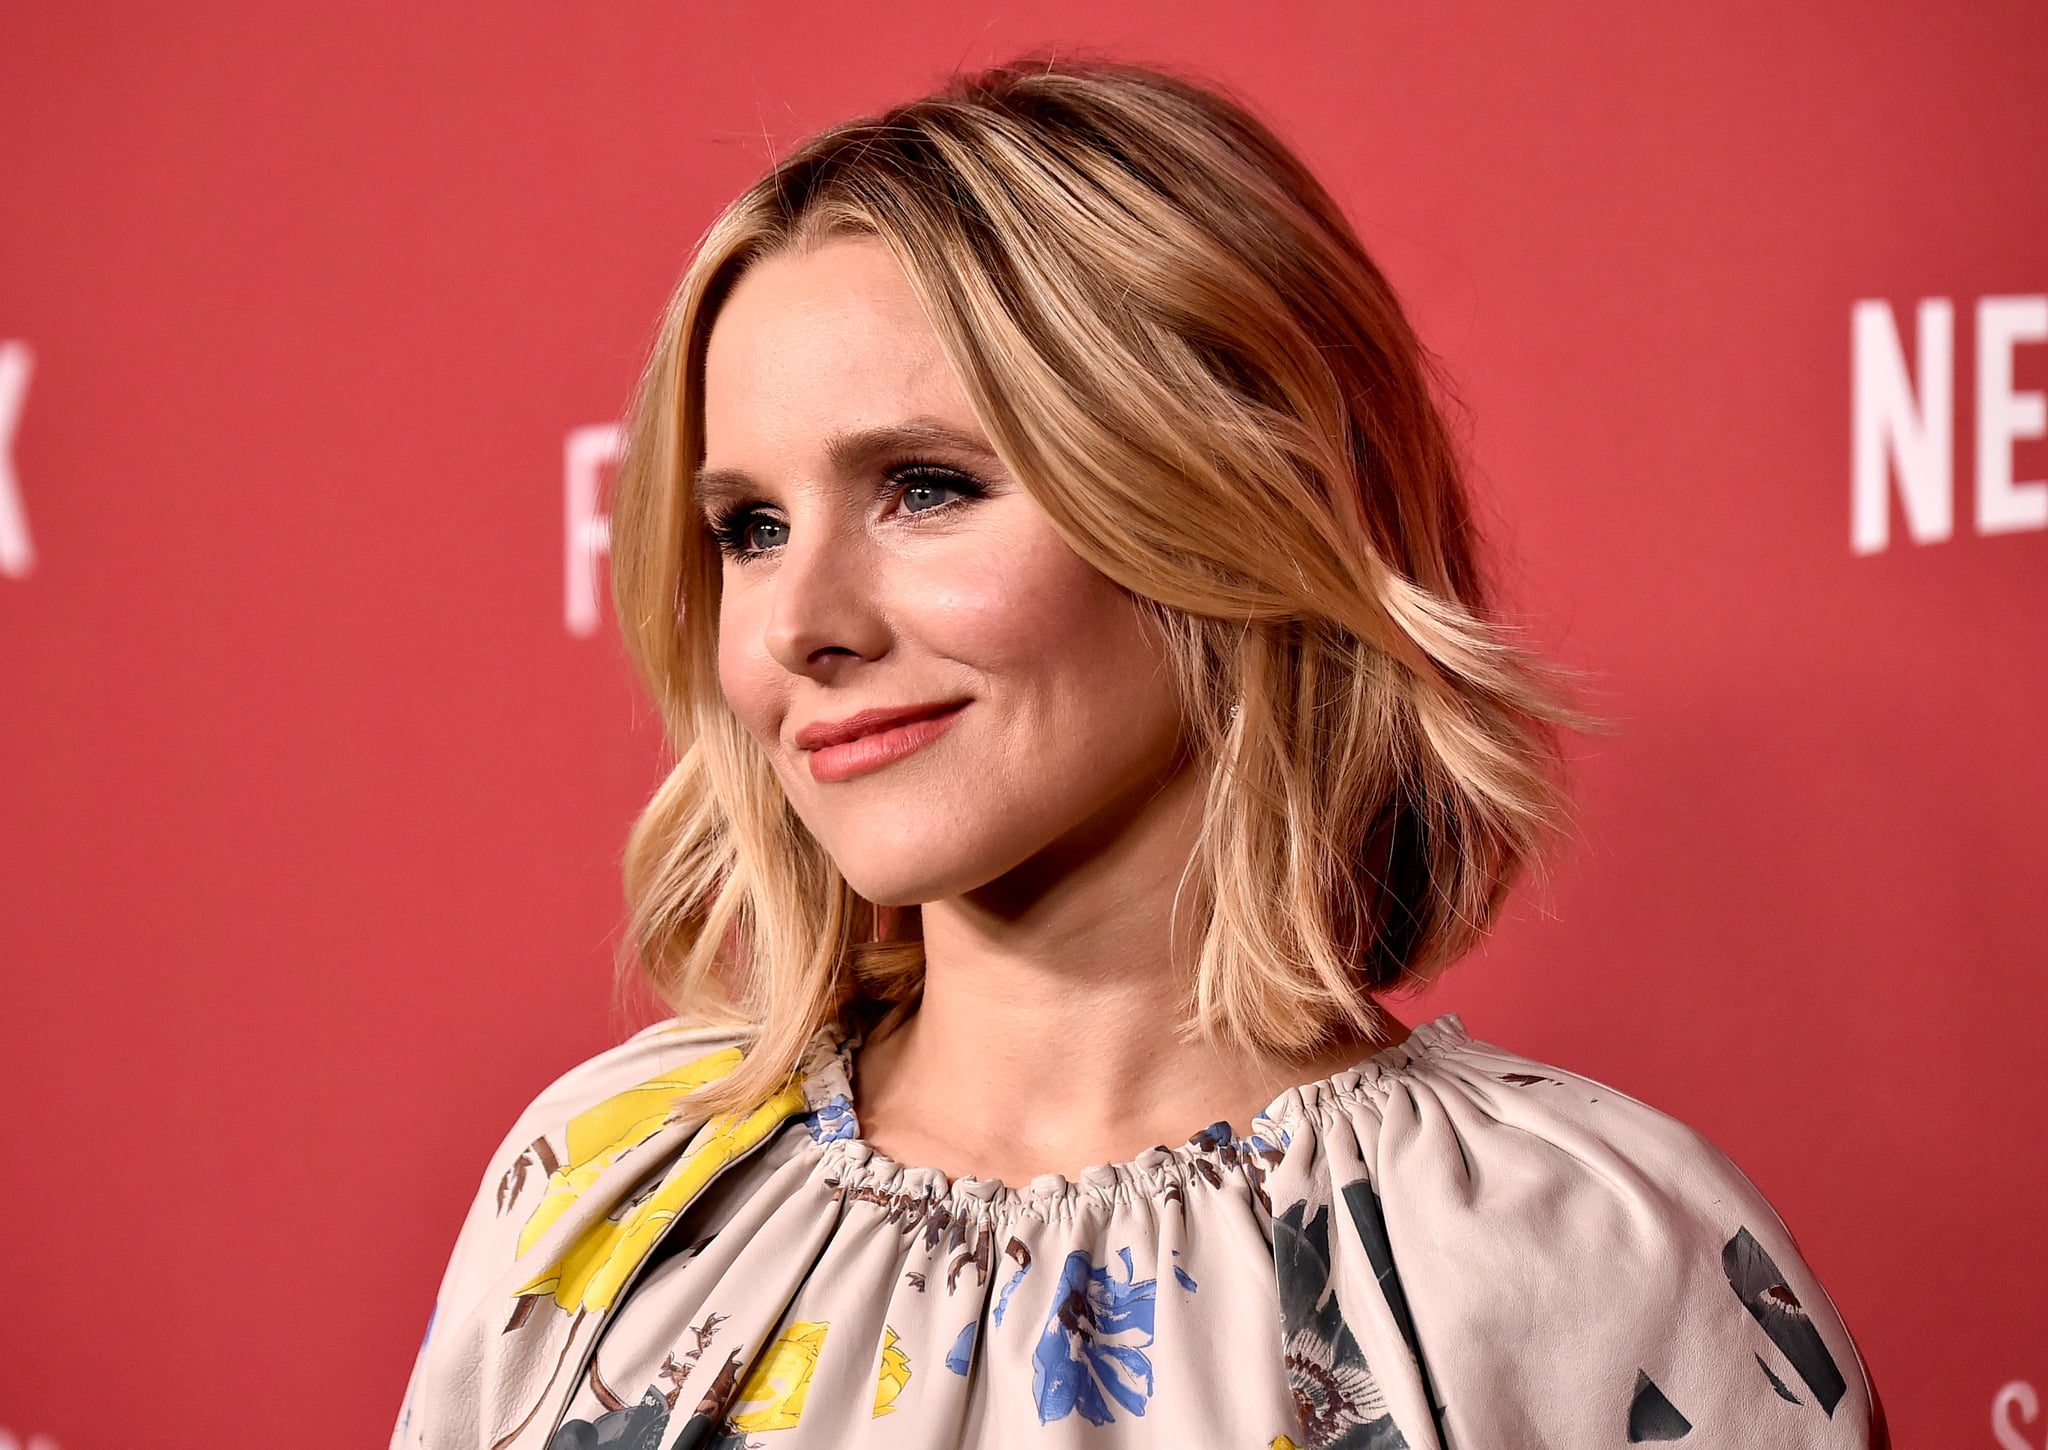 BEVERLY HILLS, CA - NOVEMBER 09:  Kristen Bell attends SAG-AFTRA Foundation Patron of the Artists Awards at the Wallis Annenberg Centre for the Performing Arts 2017 on November 9, 2017 in Beverly Hills, California.  (Photo by Frazer Harrison/Getty Images)